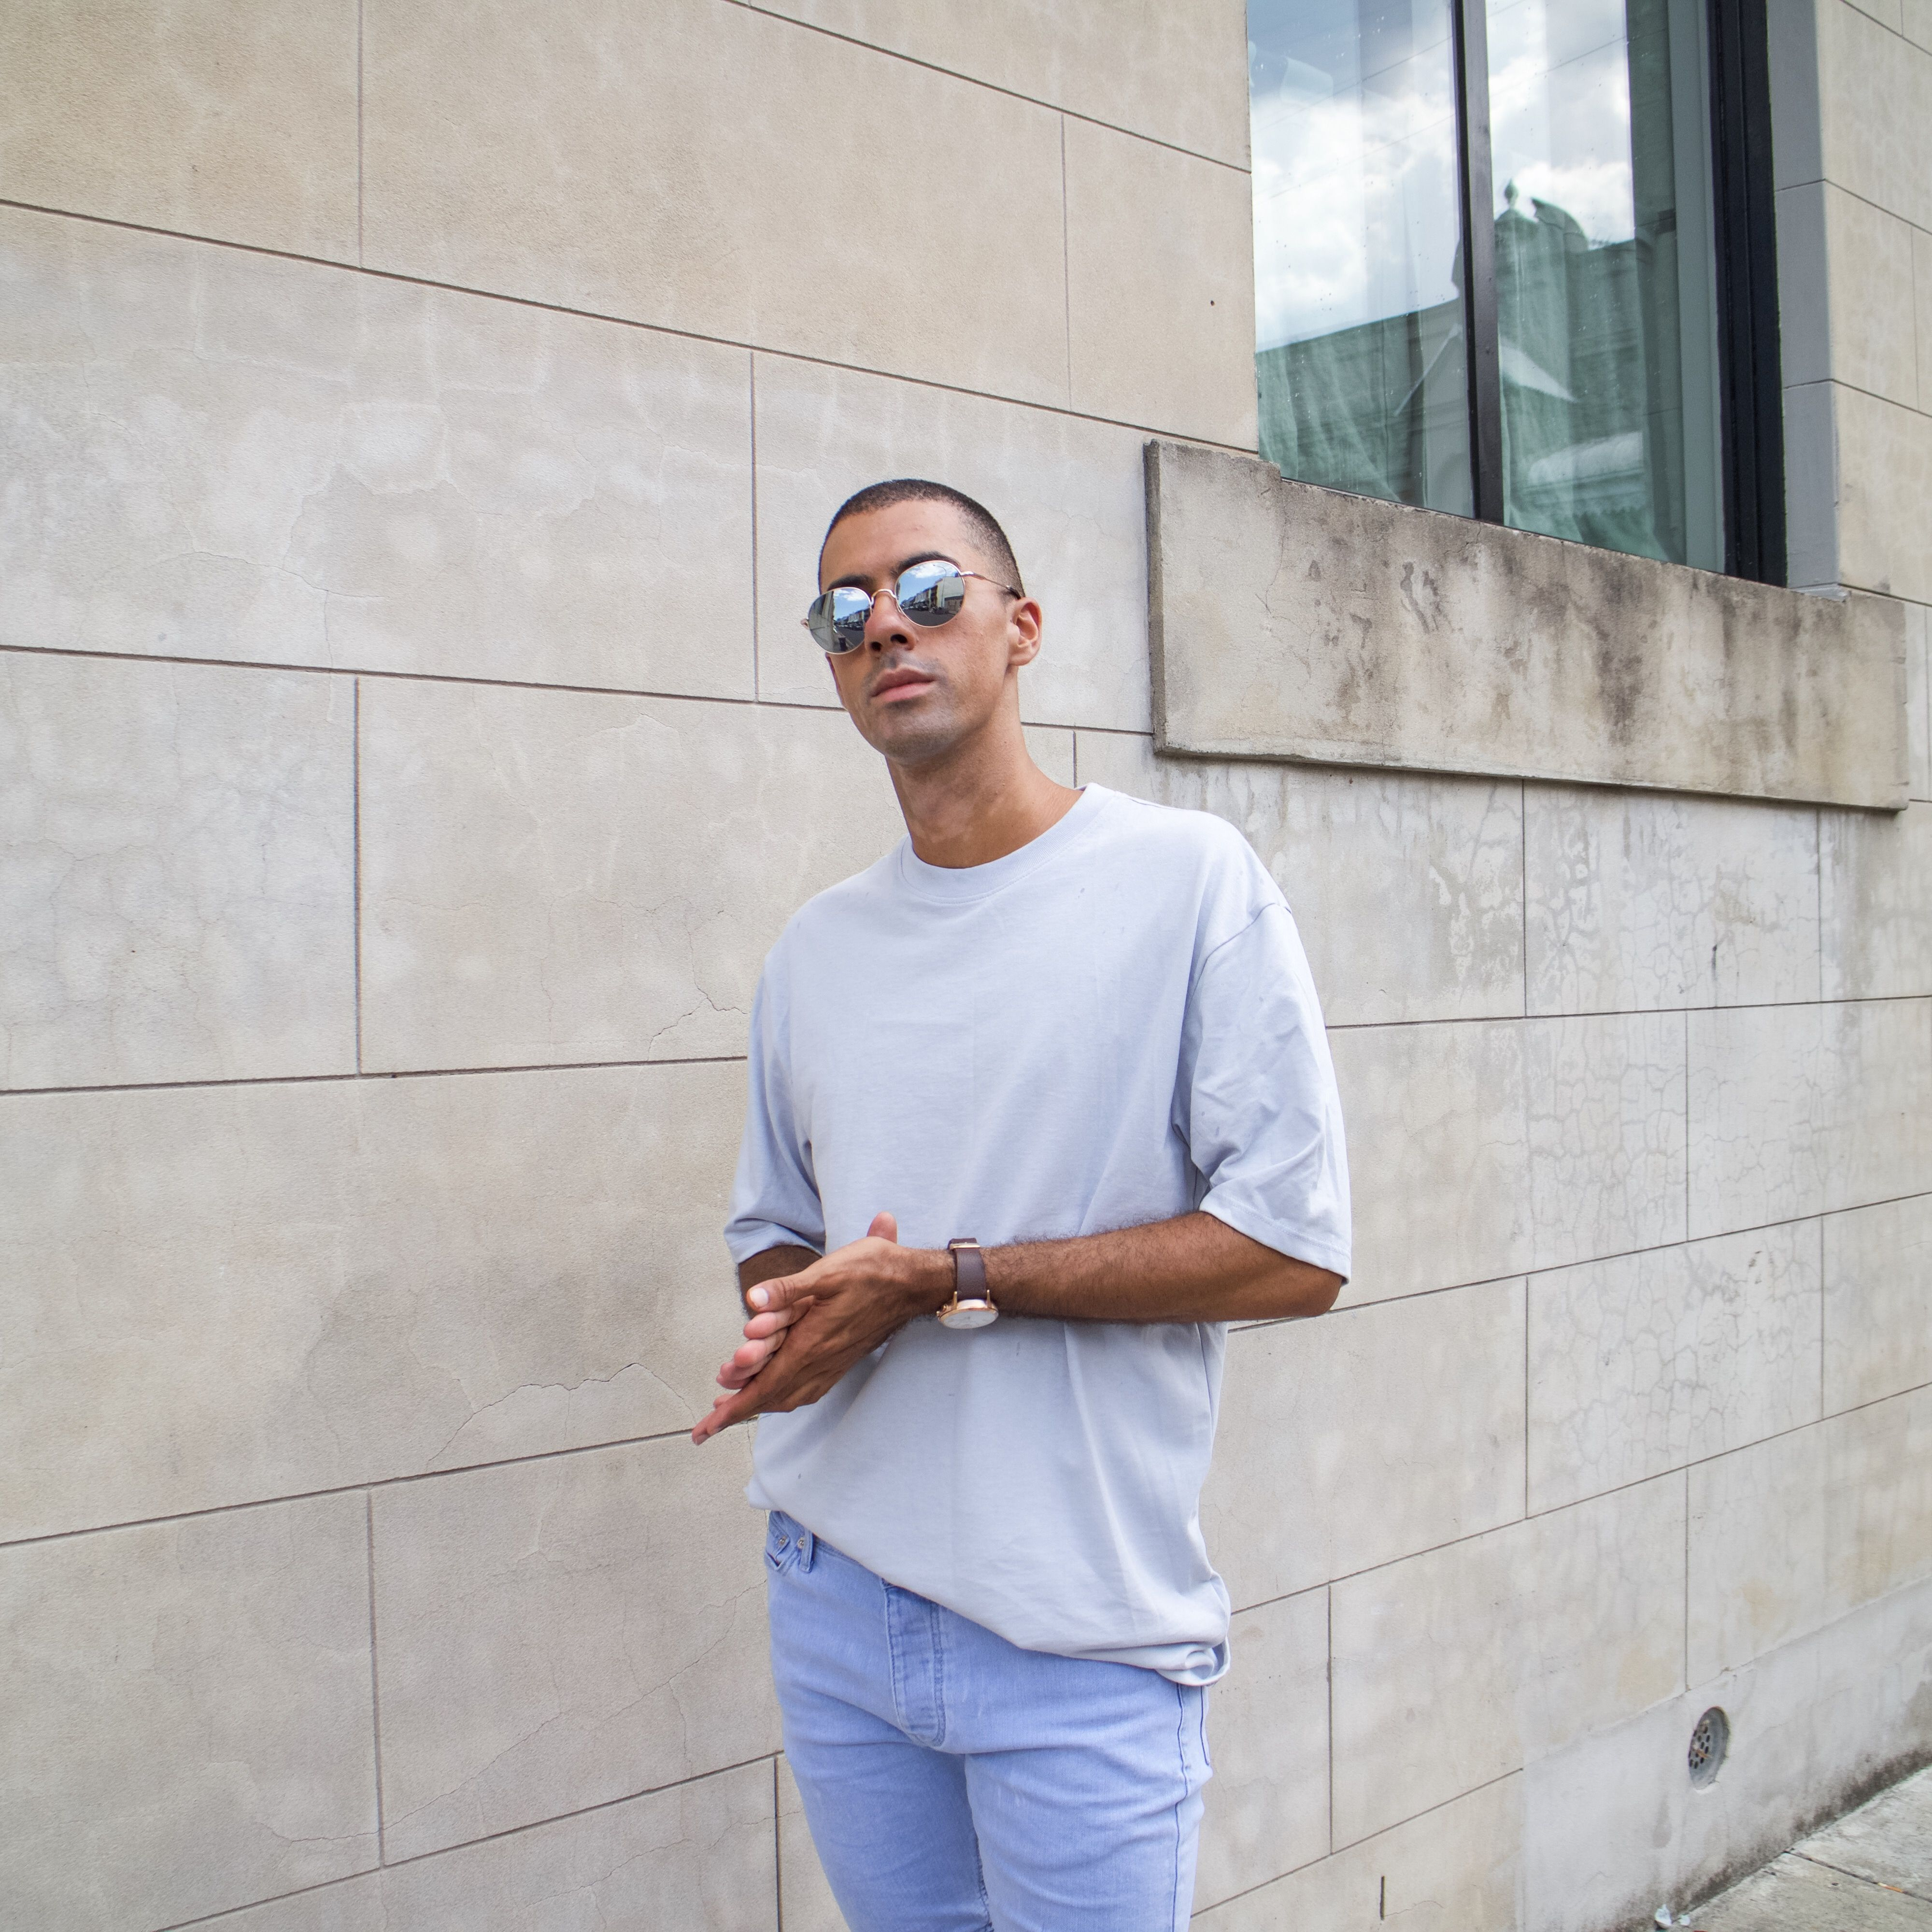 Mens Fashion Style & Outfit inspo by Blogger MR TURNER. Topshop Topman oversized Blue Tee with same brand blue jean shorts.